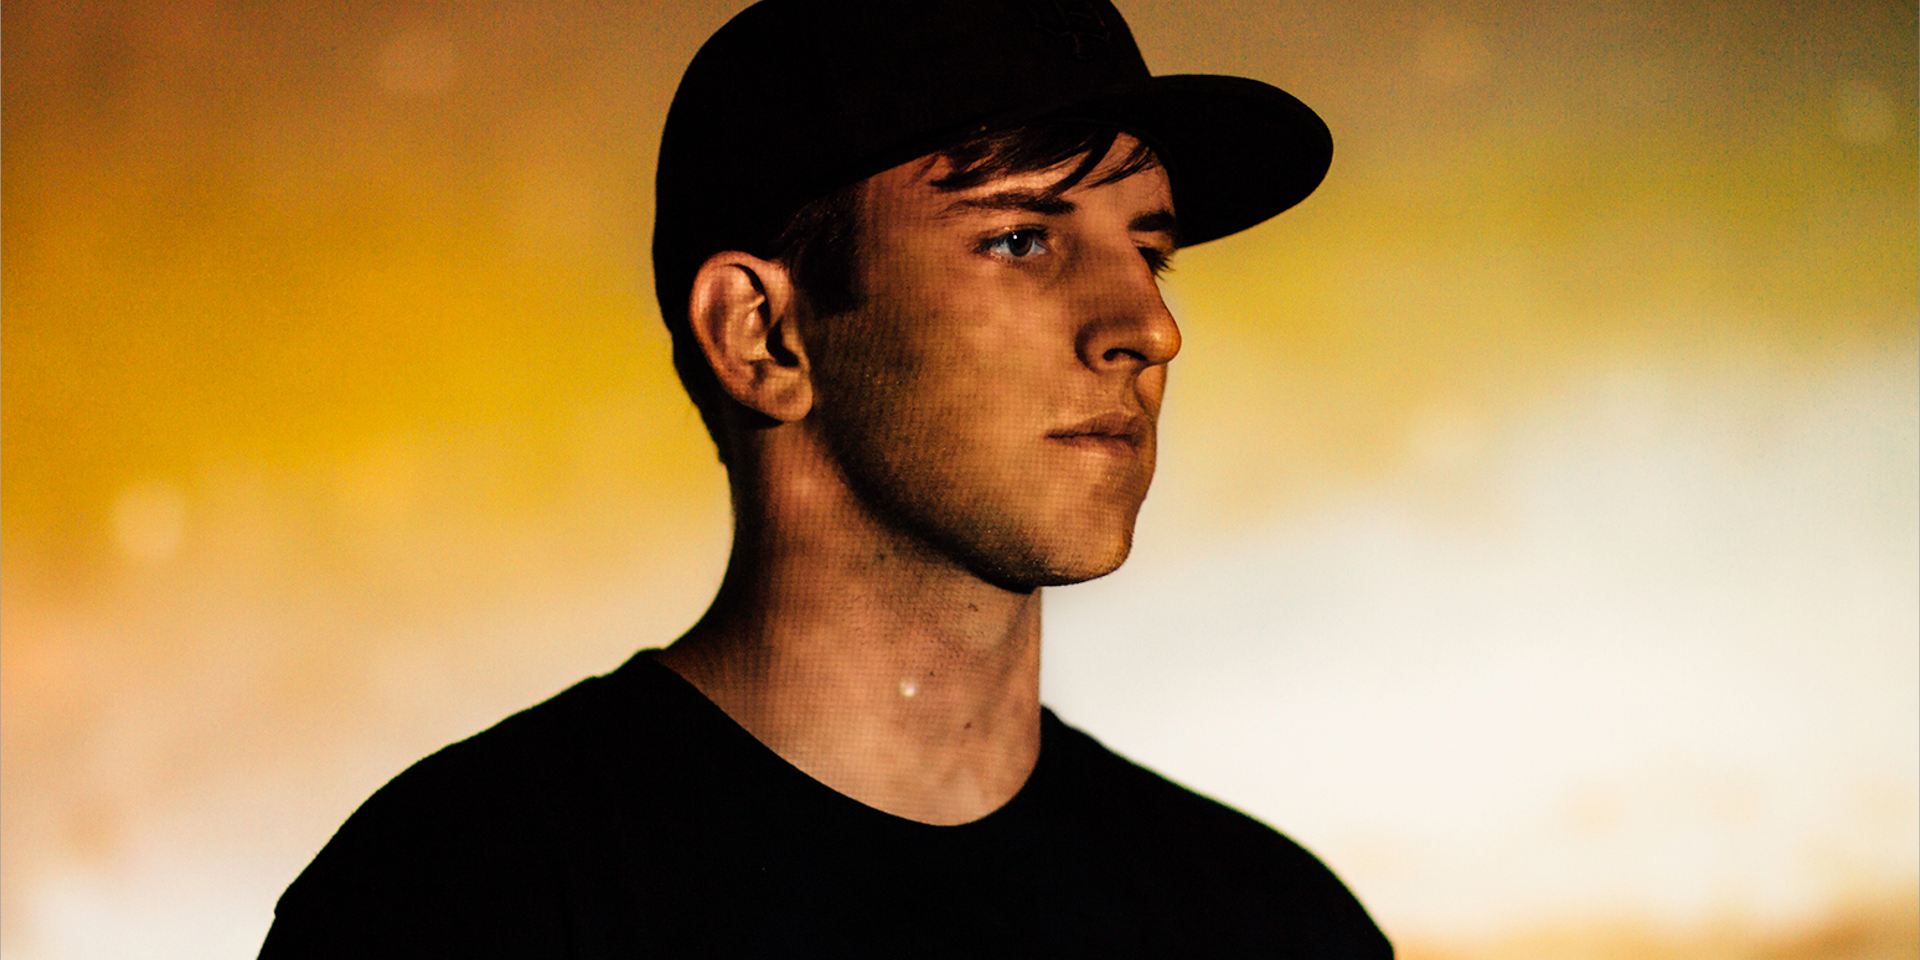 """""""This is therapeutic for me"""": ILLENIUM on touring, the effect his music has on people, and more"""